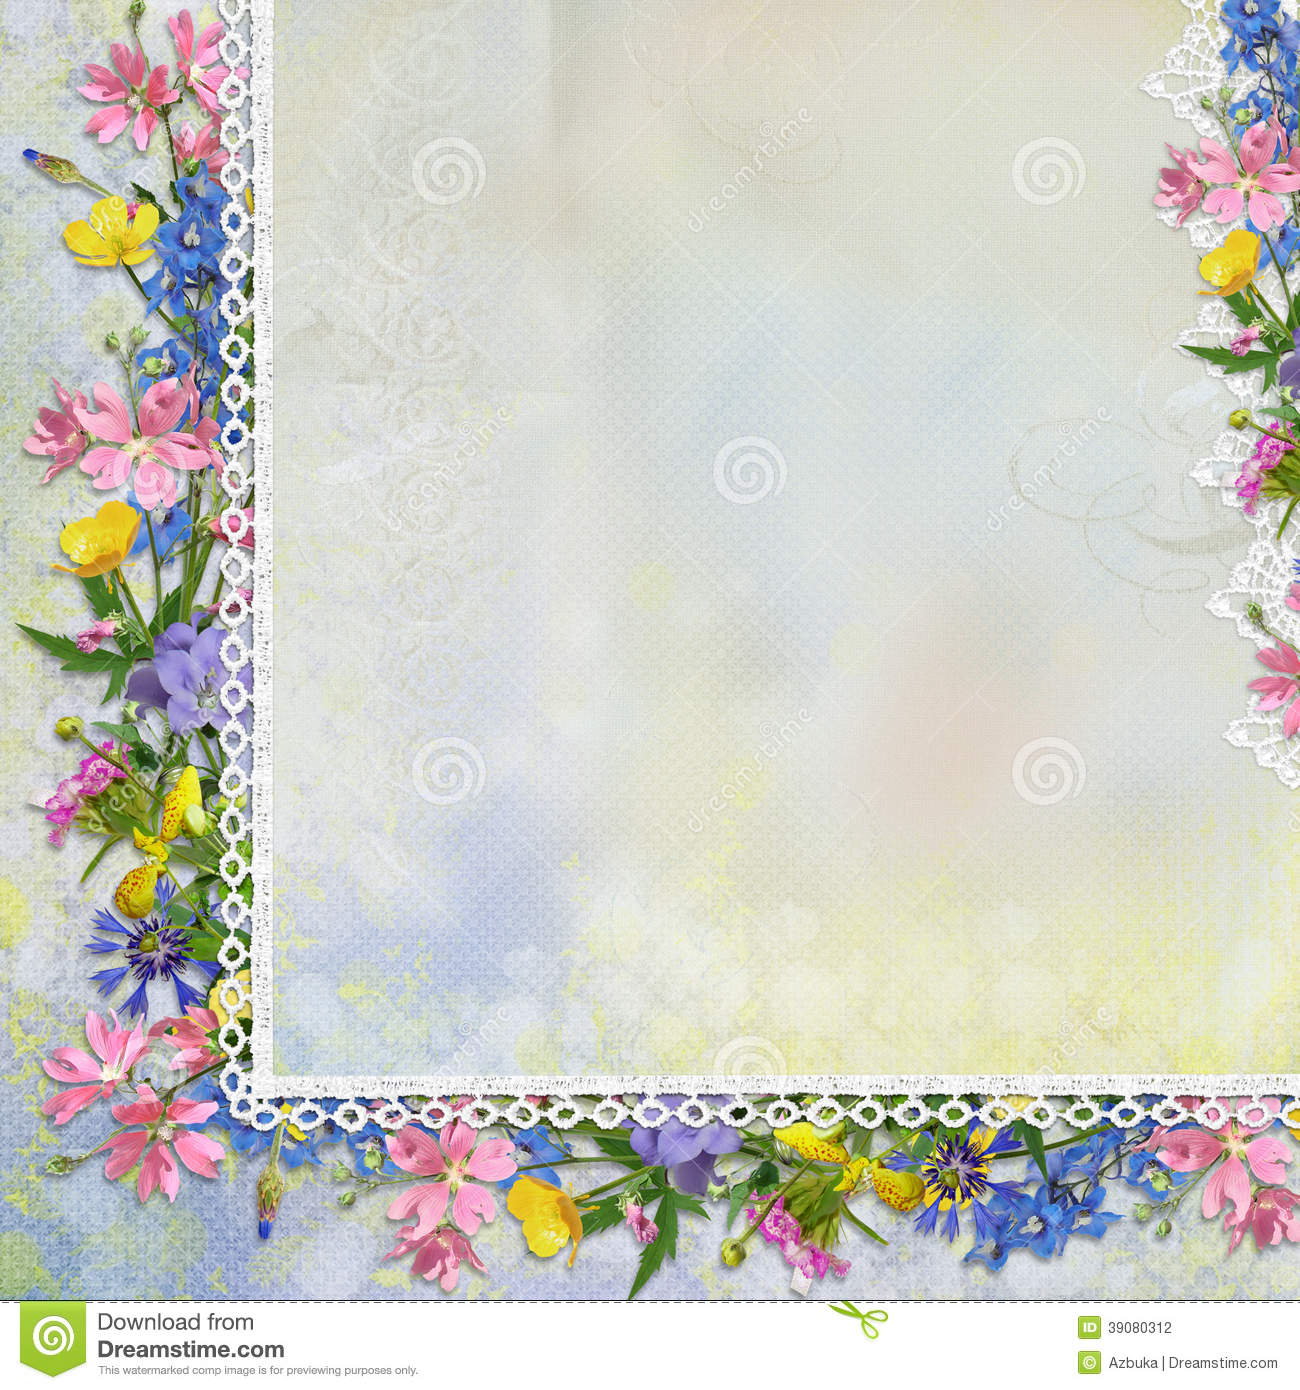 Border Of Flowers With Lace On Vintage Background Stock Illustration